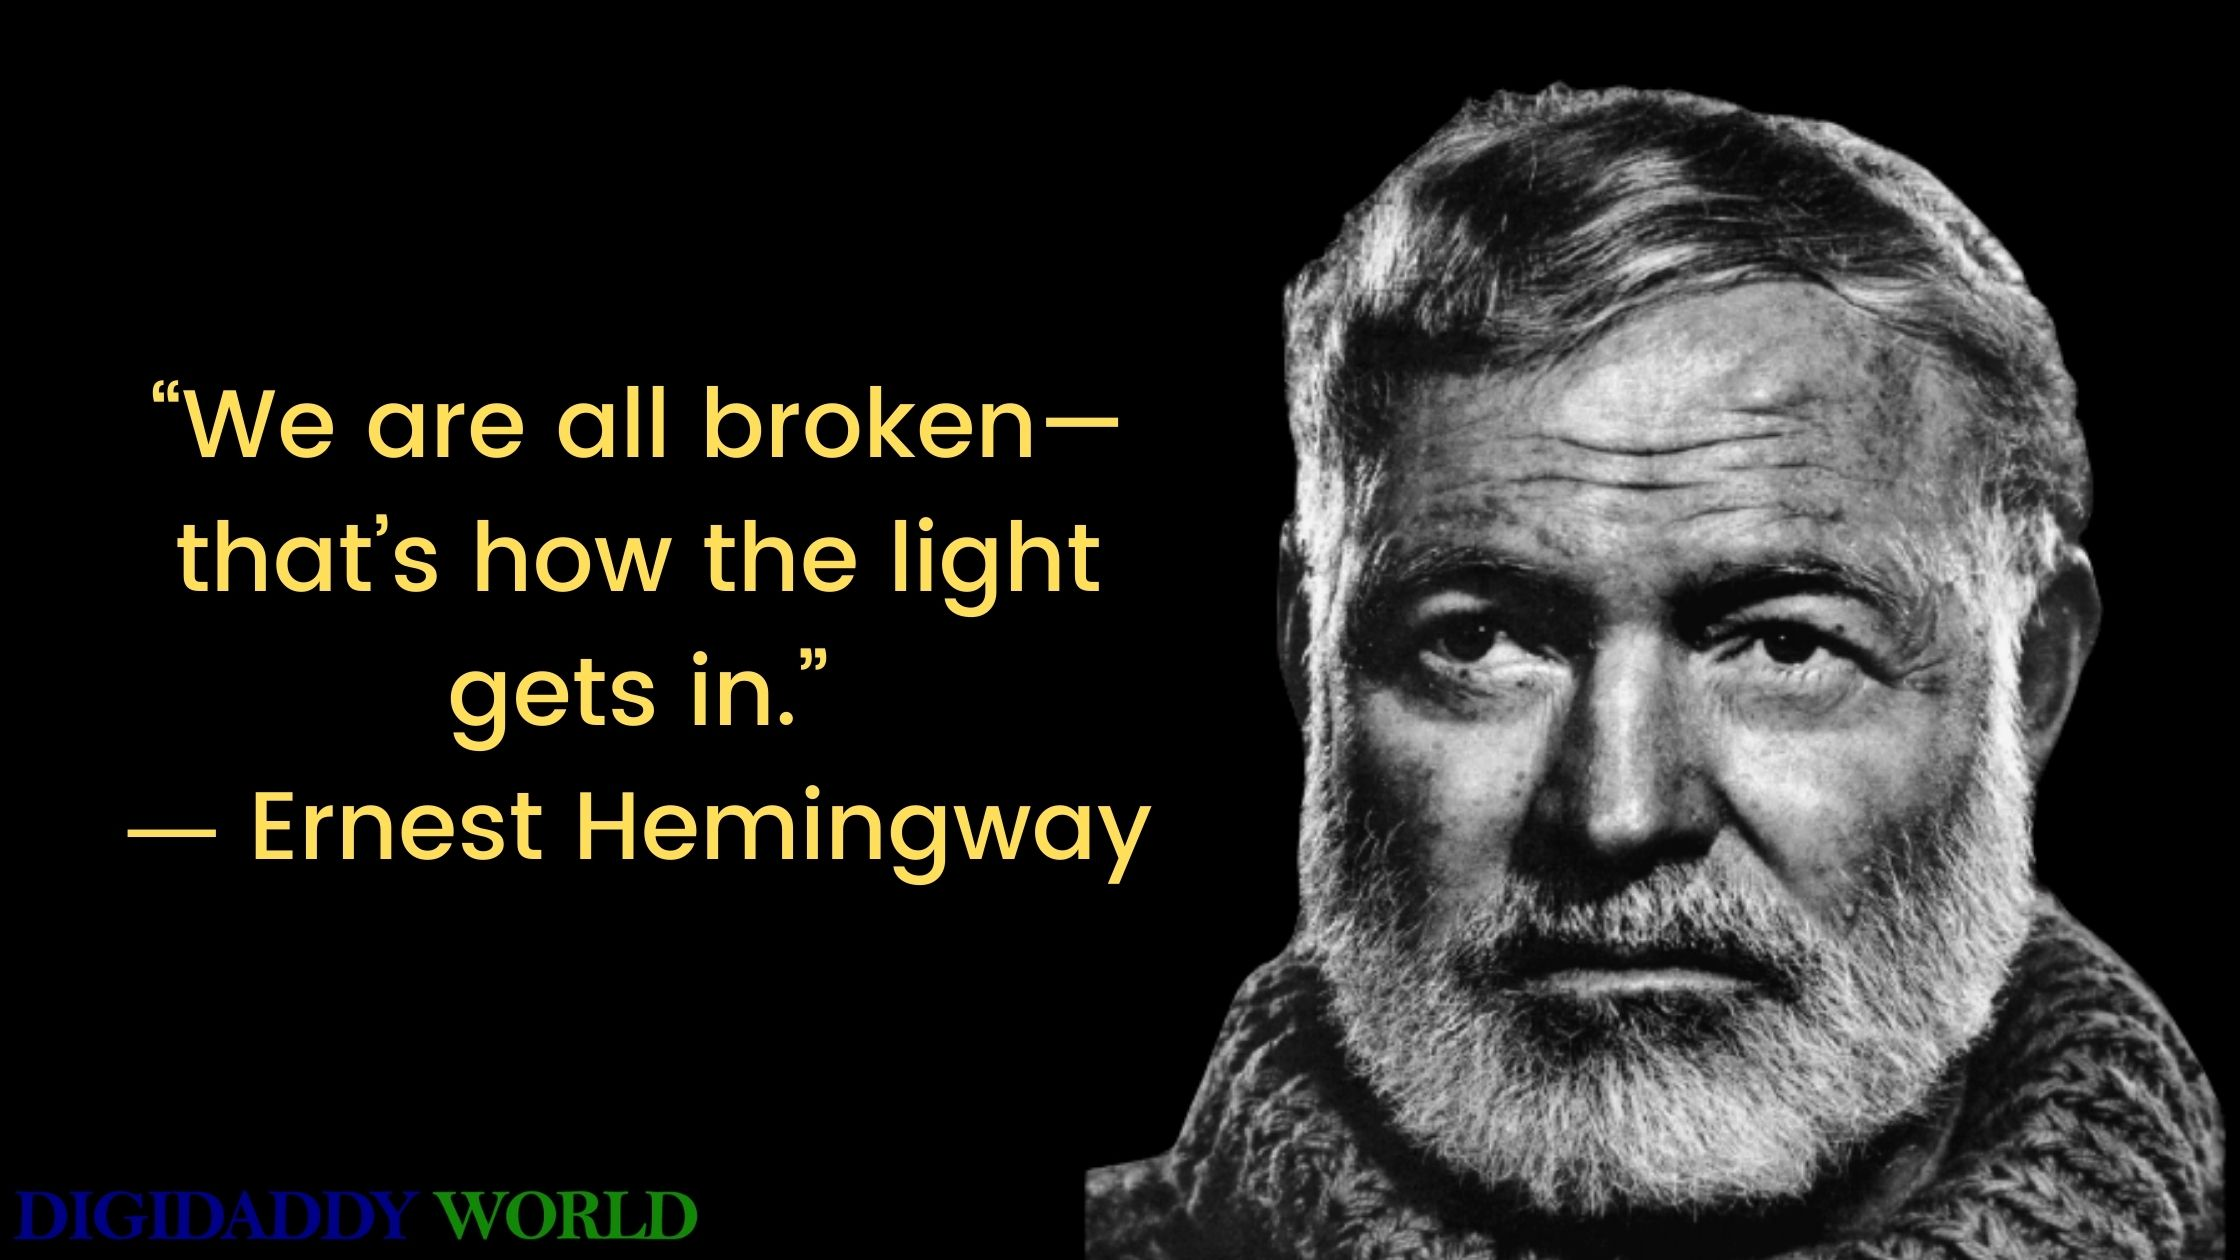 Best Ernest Hemingway Love Quotes About Life, Writing